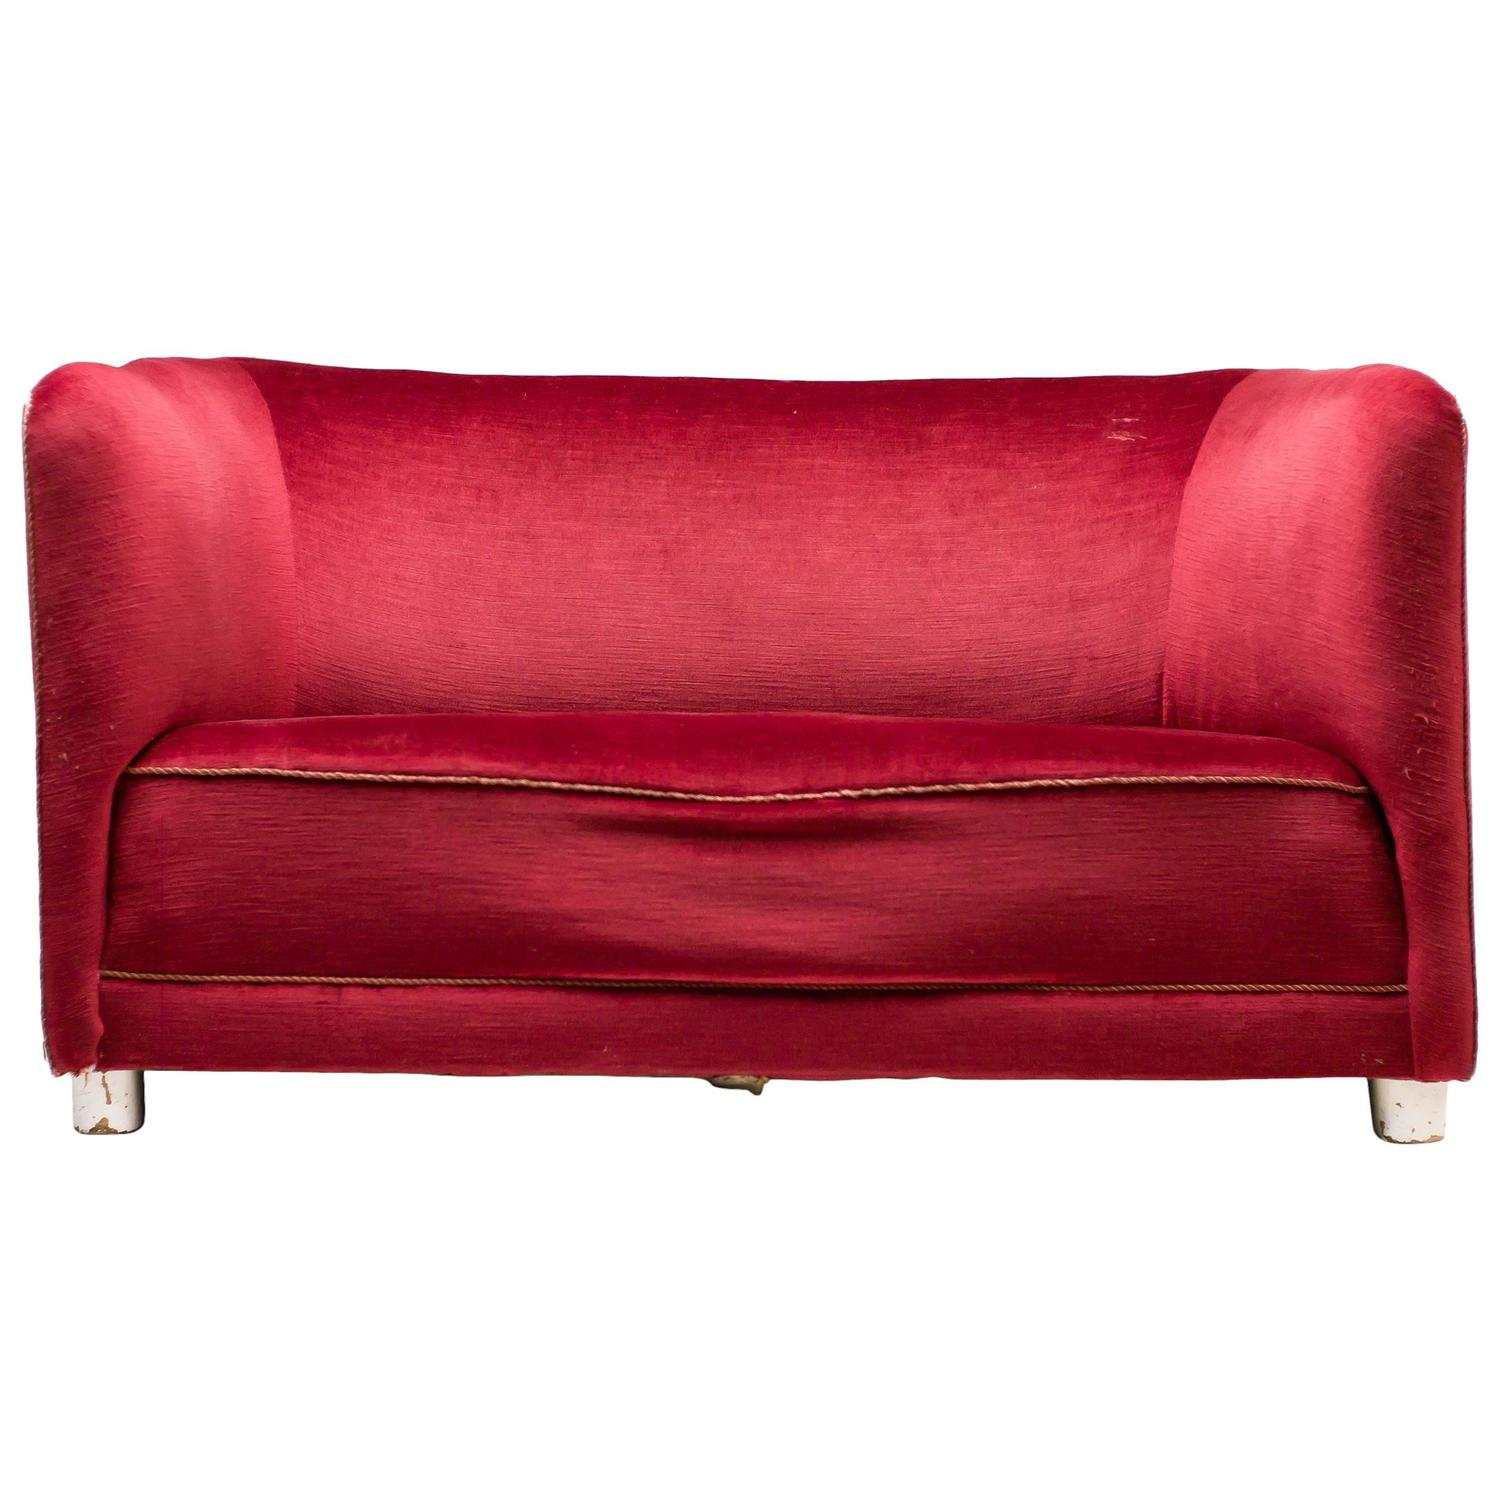 1930s Red Velvet Sofa By Ole Wanscher For Fritz Hansen For Sale At 1stdibs